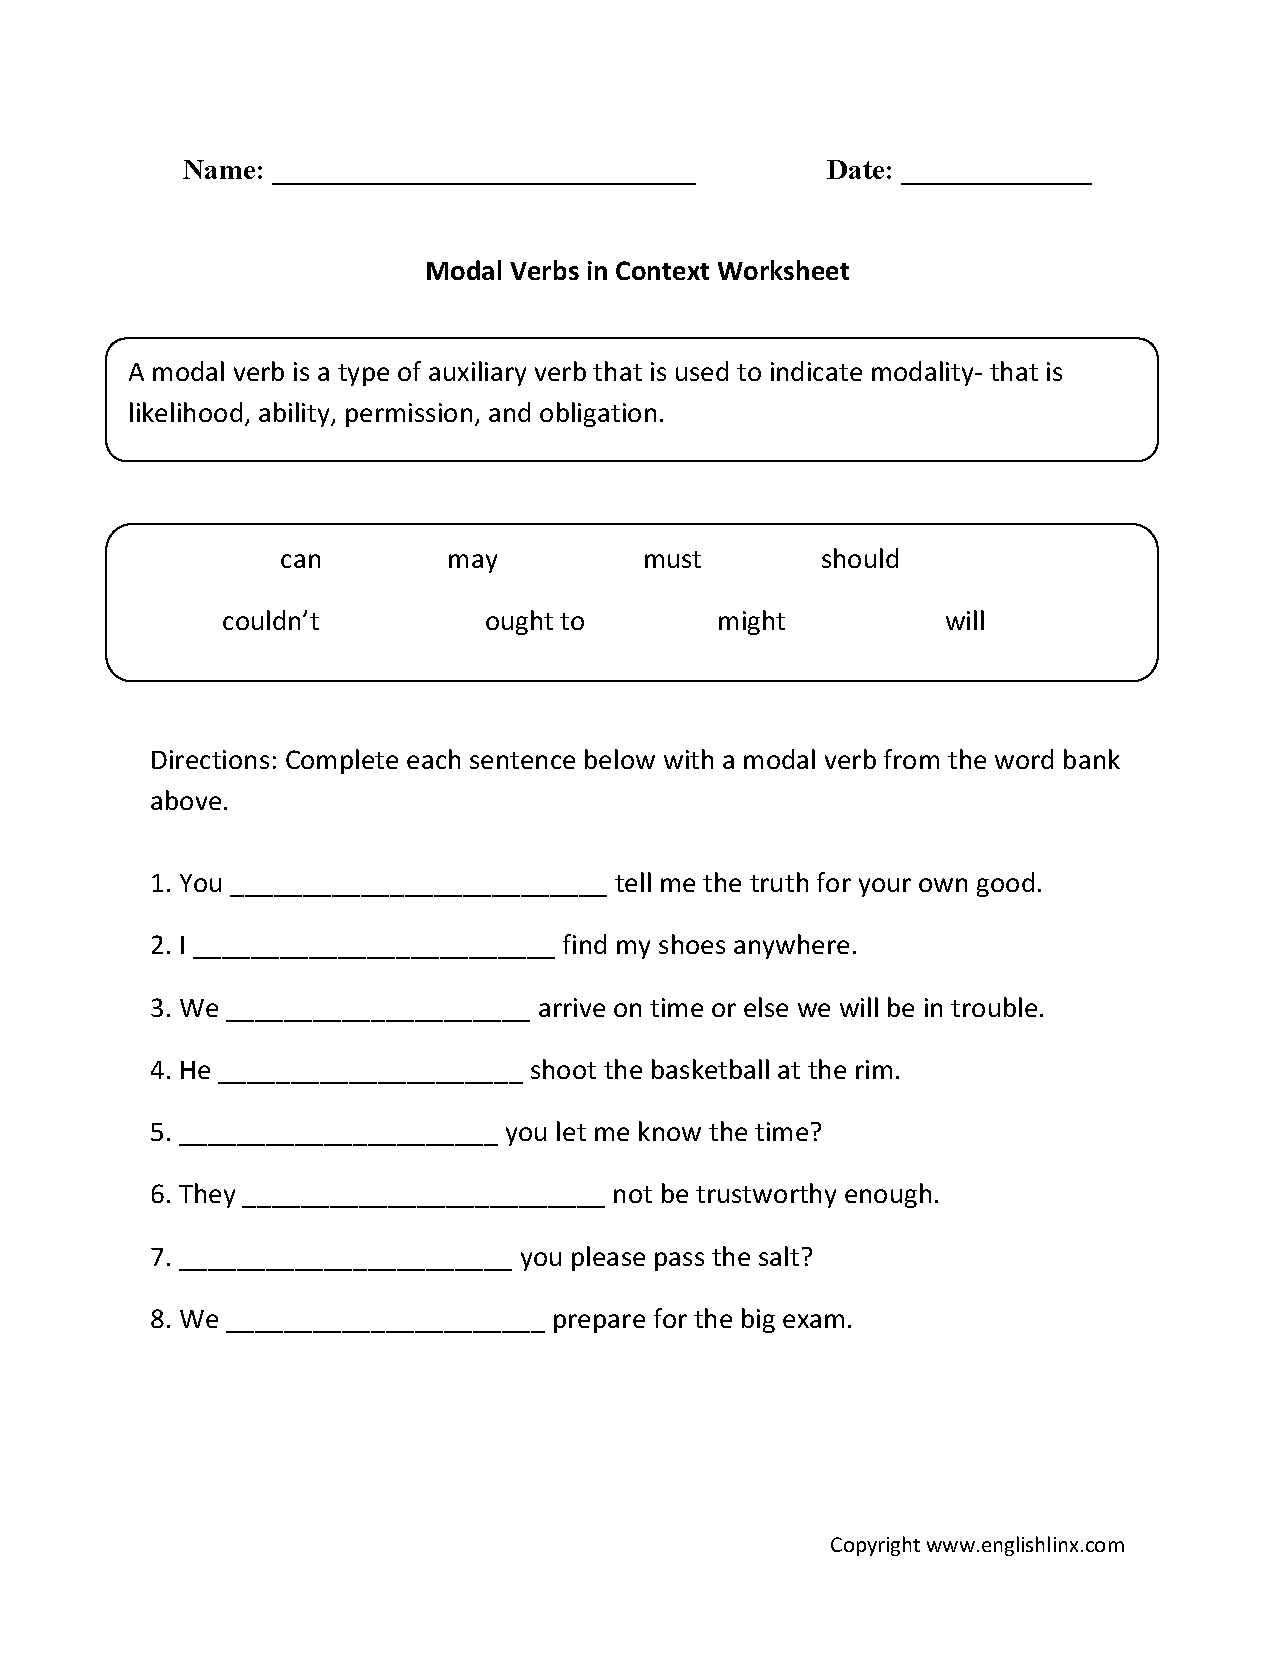 worksheet Free Verb Worksheets englishlinx com verbs worksheets modal worksheets